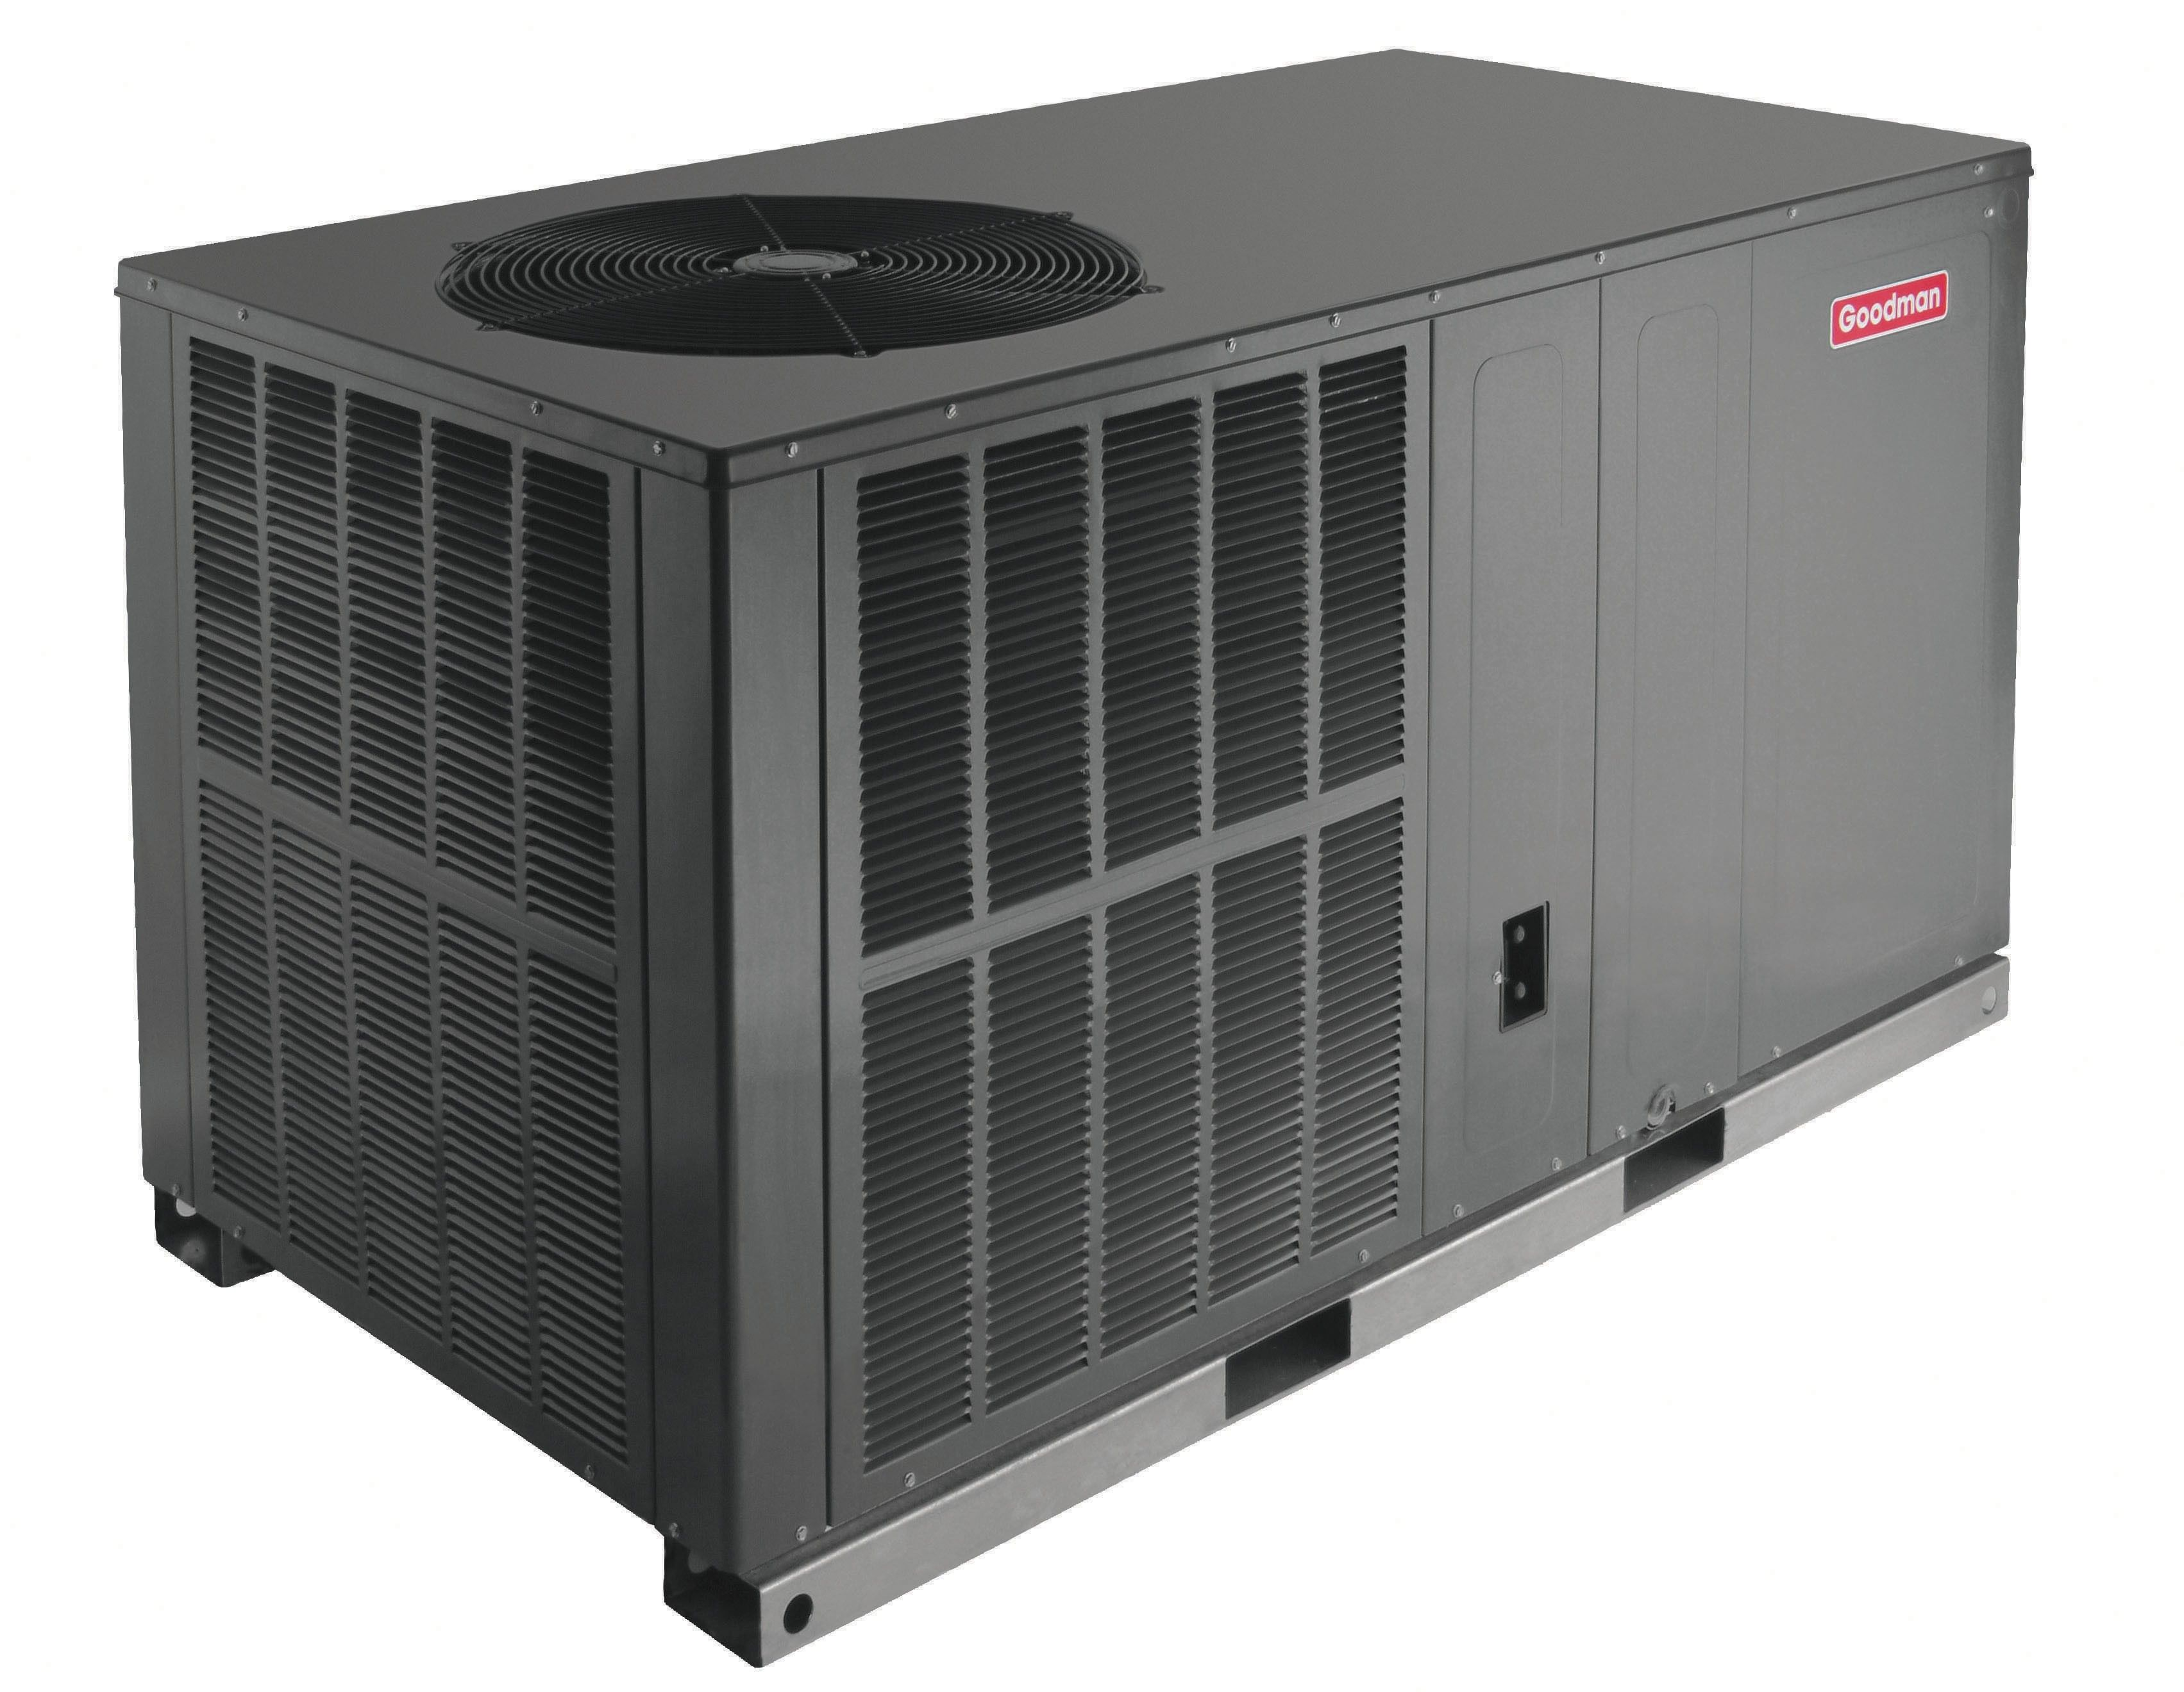 Goodman 3 Ton 14 Seer Electric Heat Package Unit